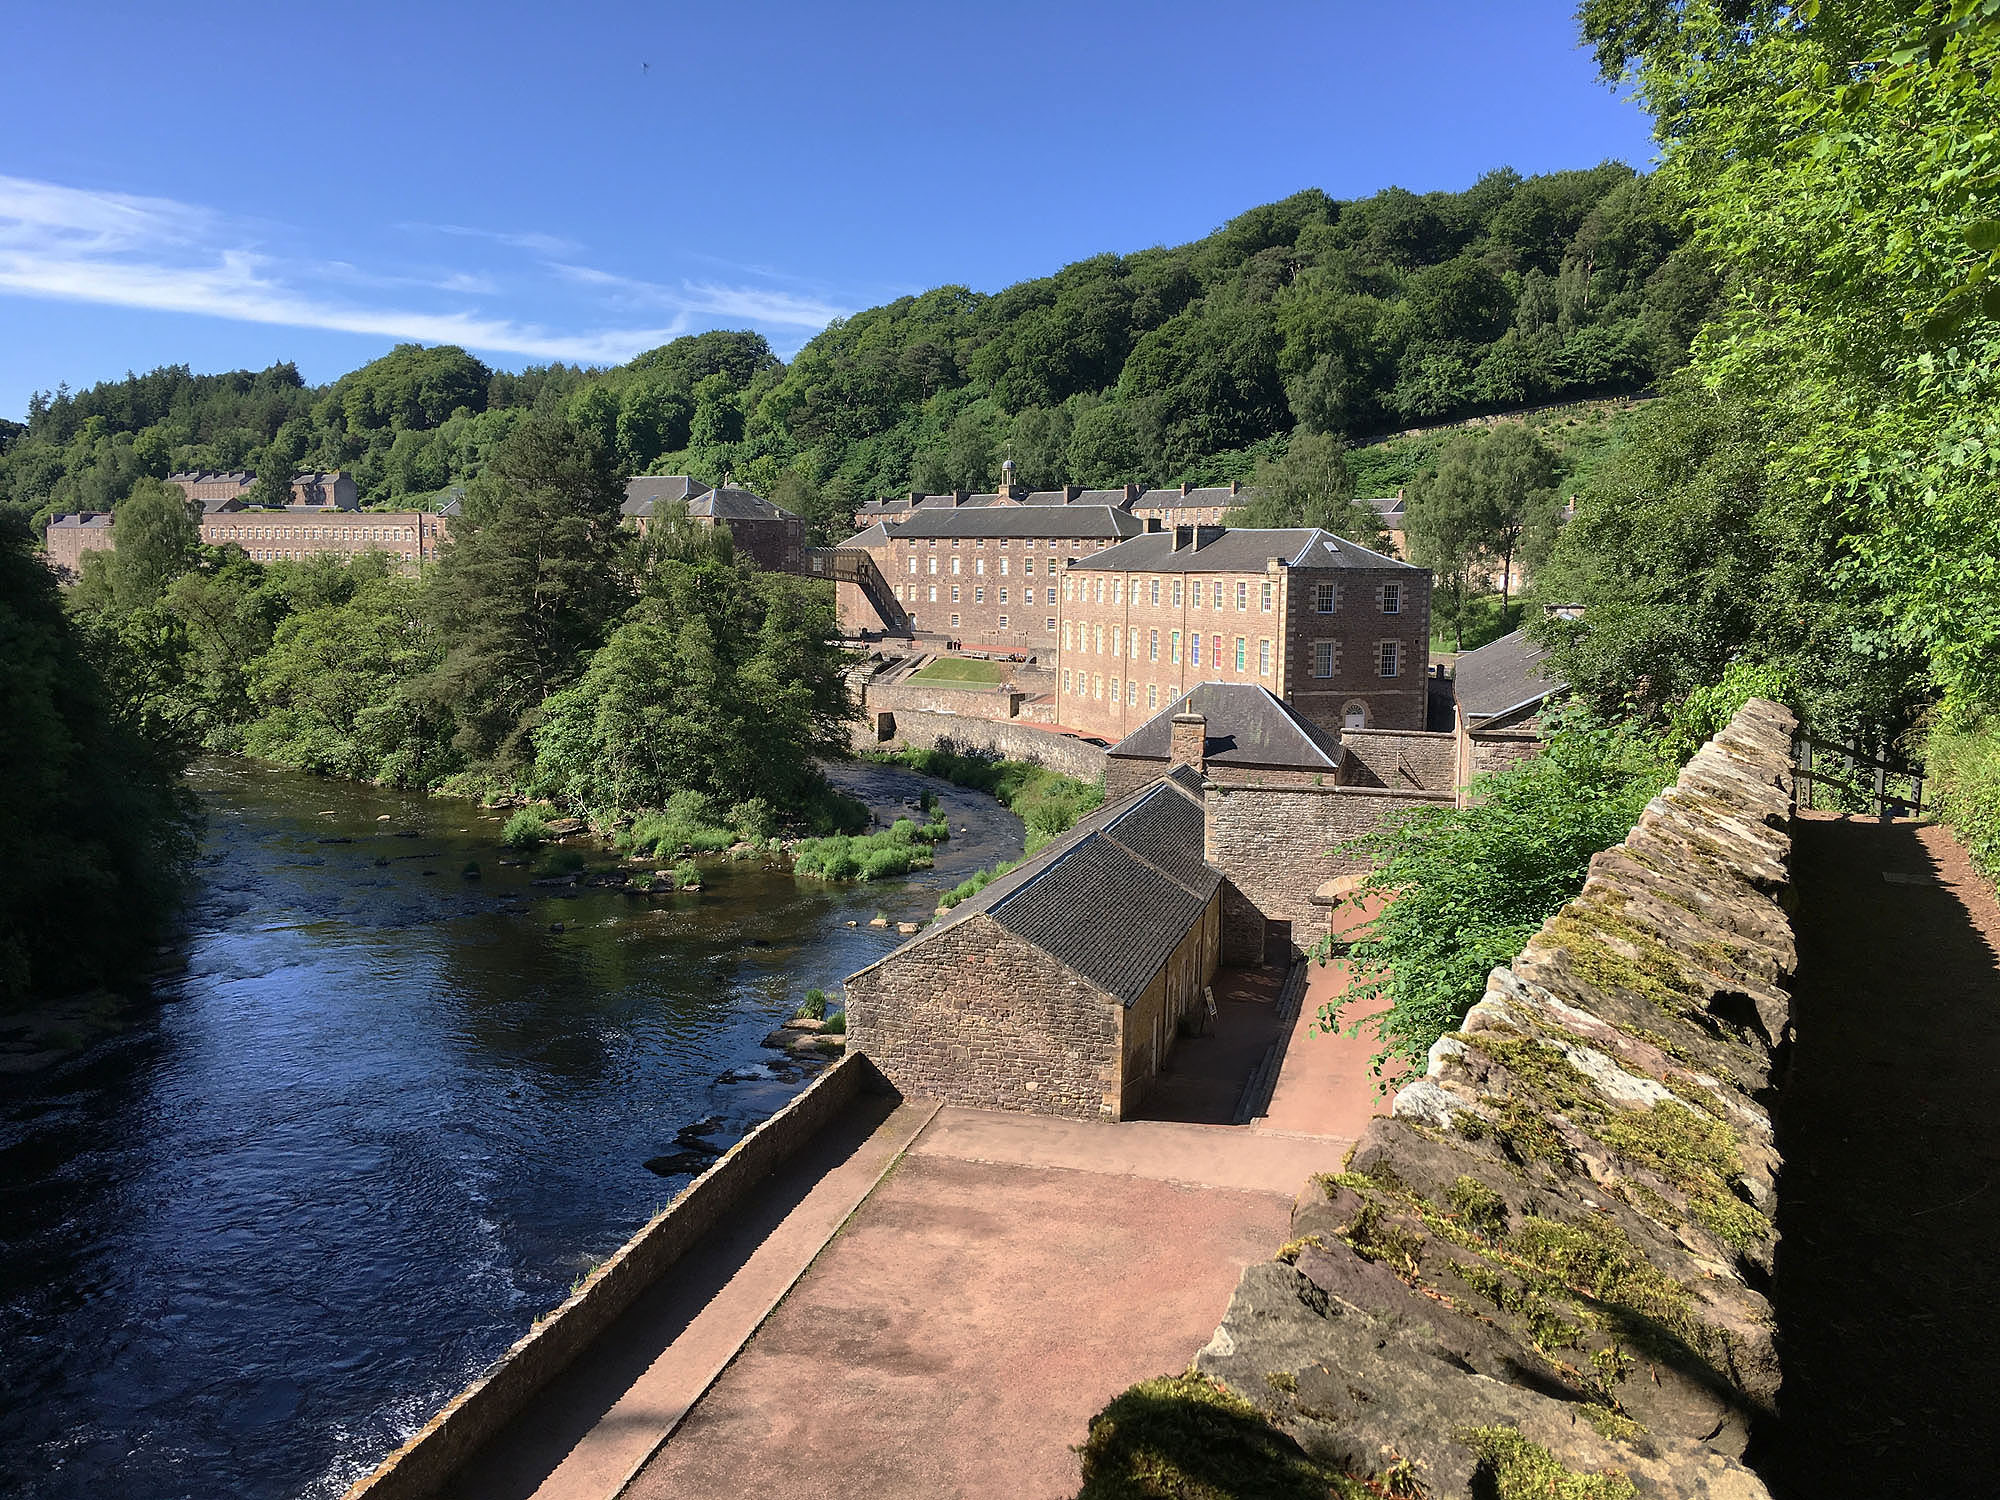 New Lanark and the River Clyde, photograph by Ritsert Rinsma